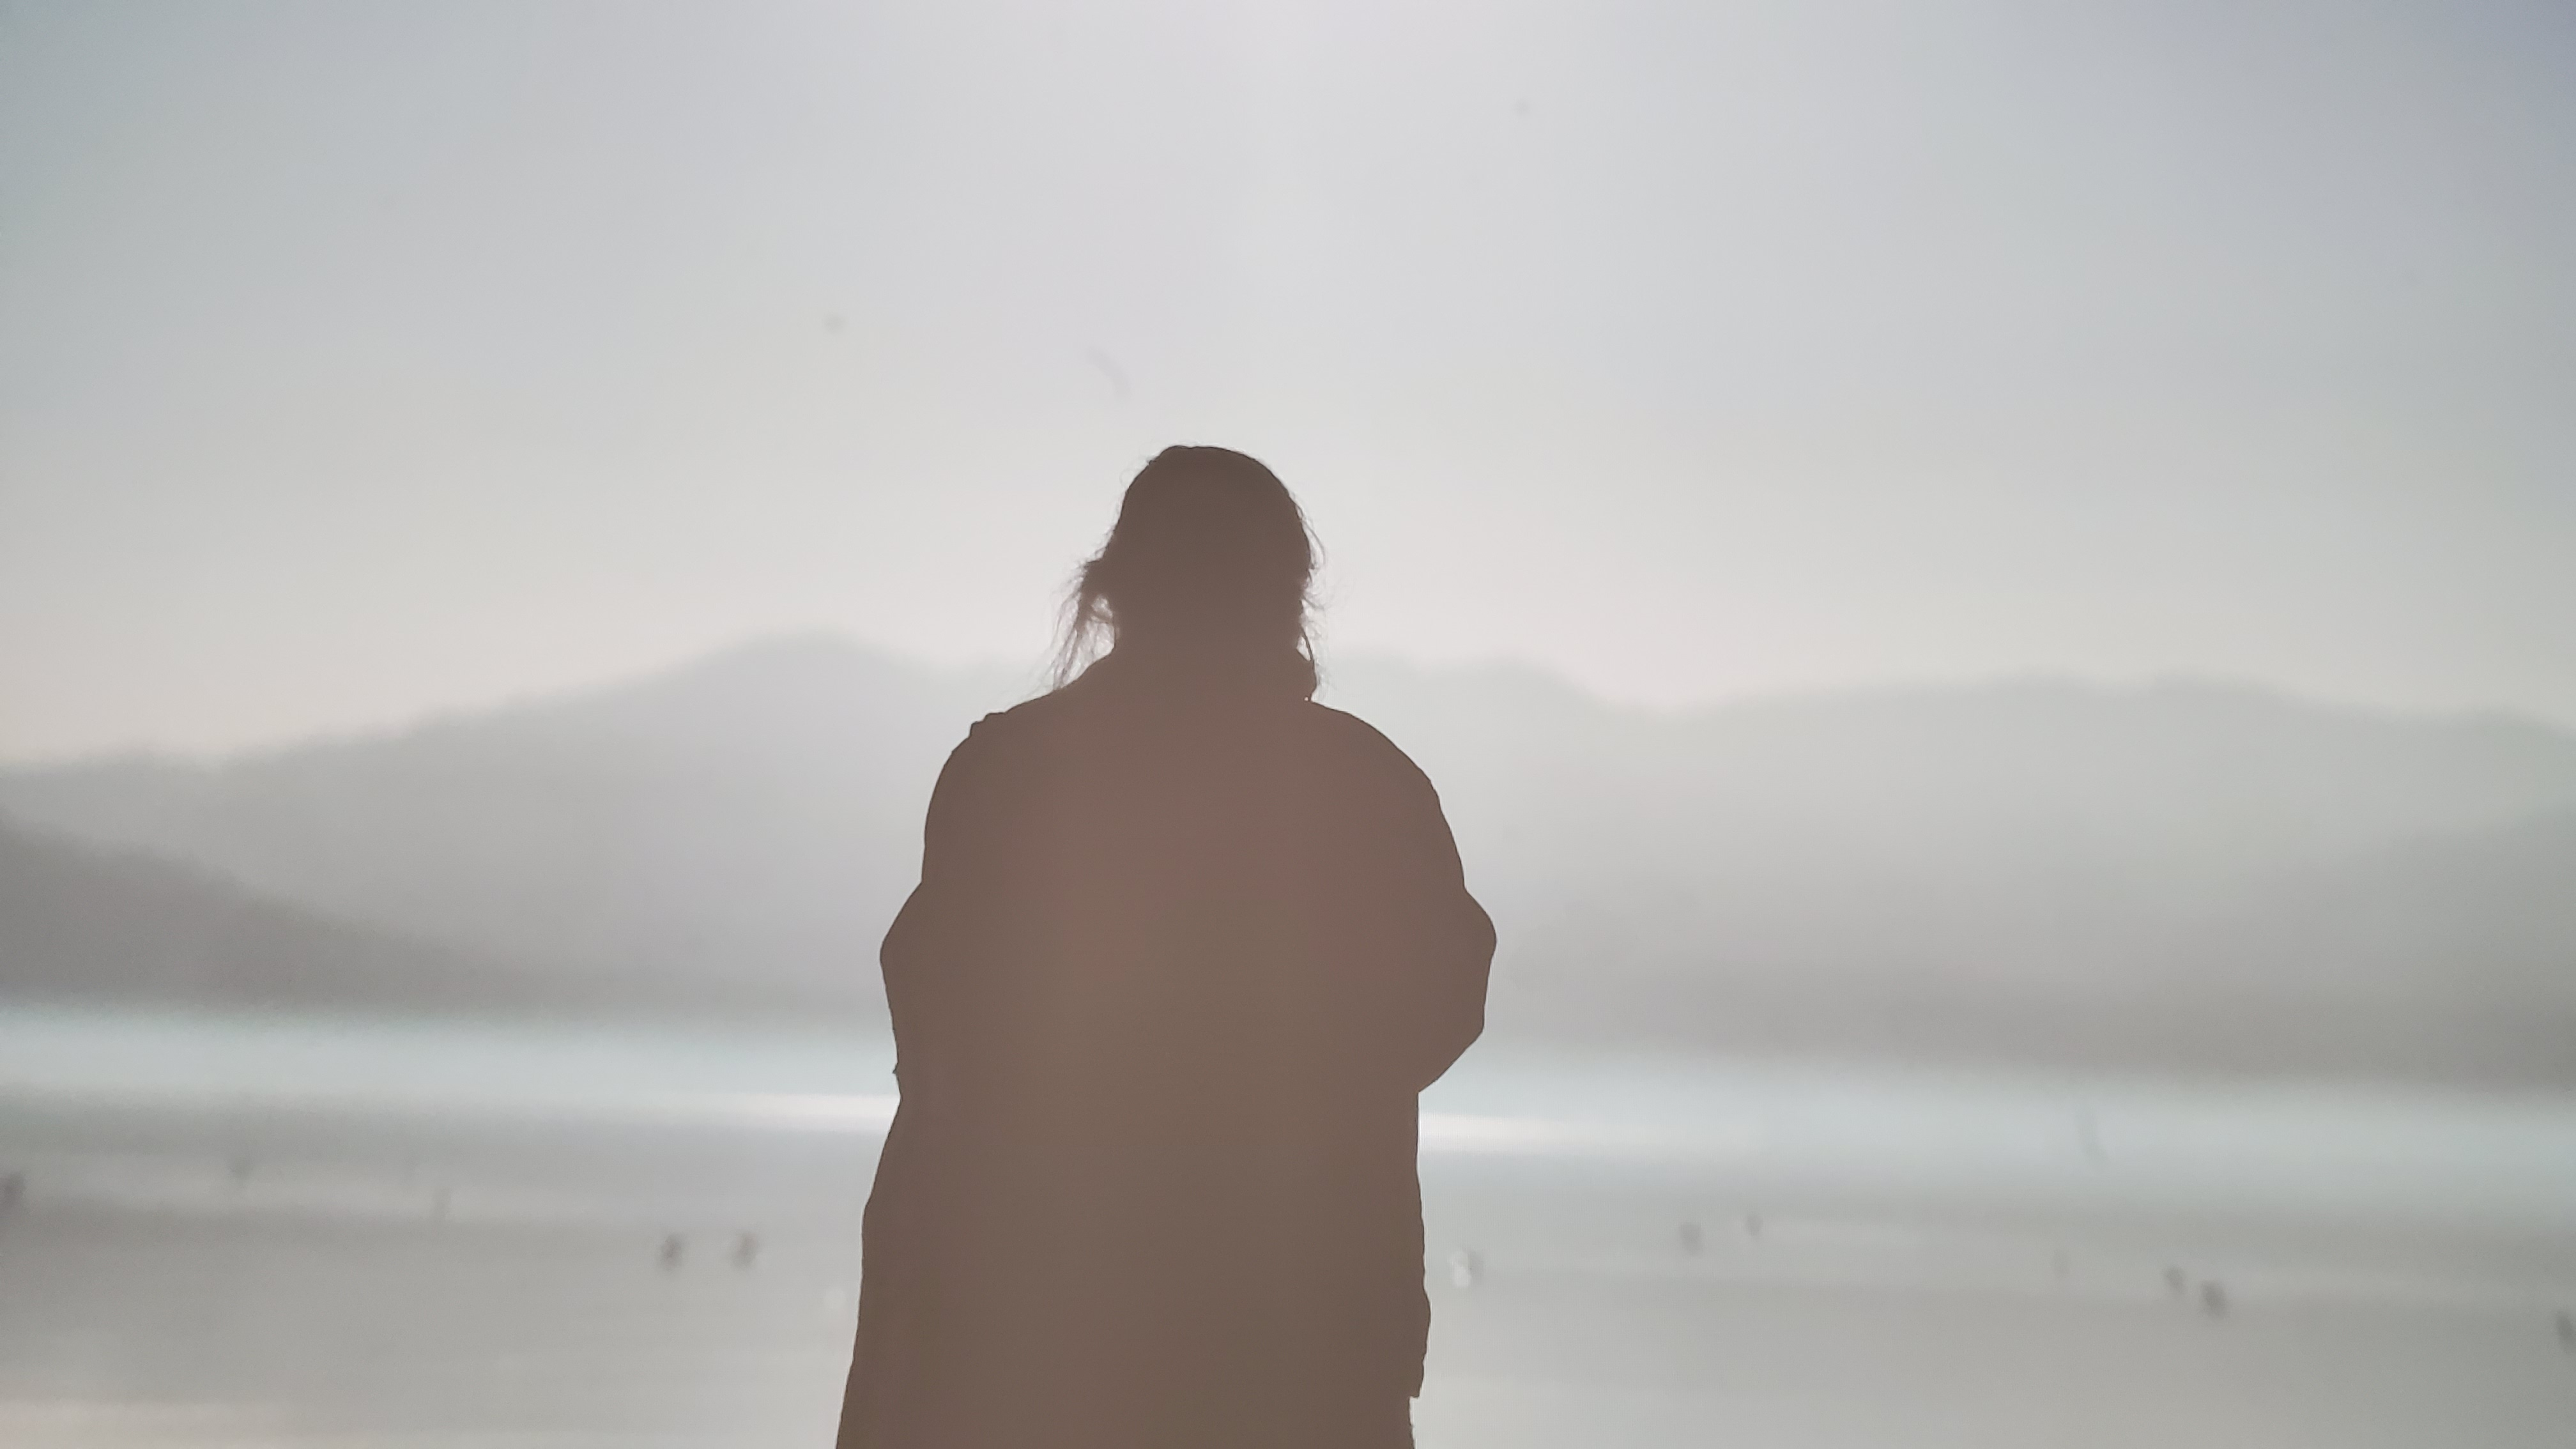 Photo of Heige Kim in silhouette standing on a plain or seashore with mountains in distance